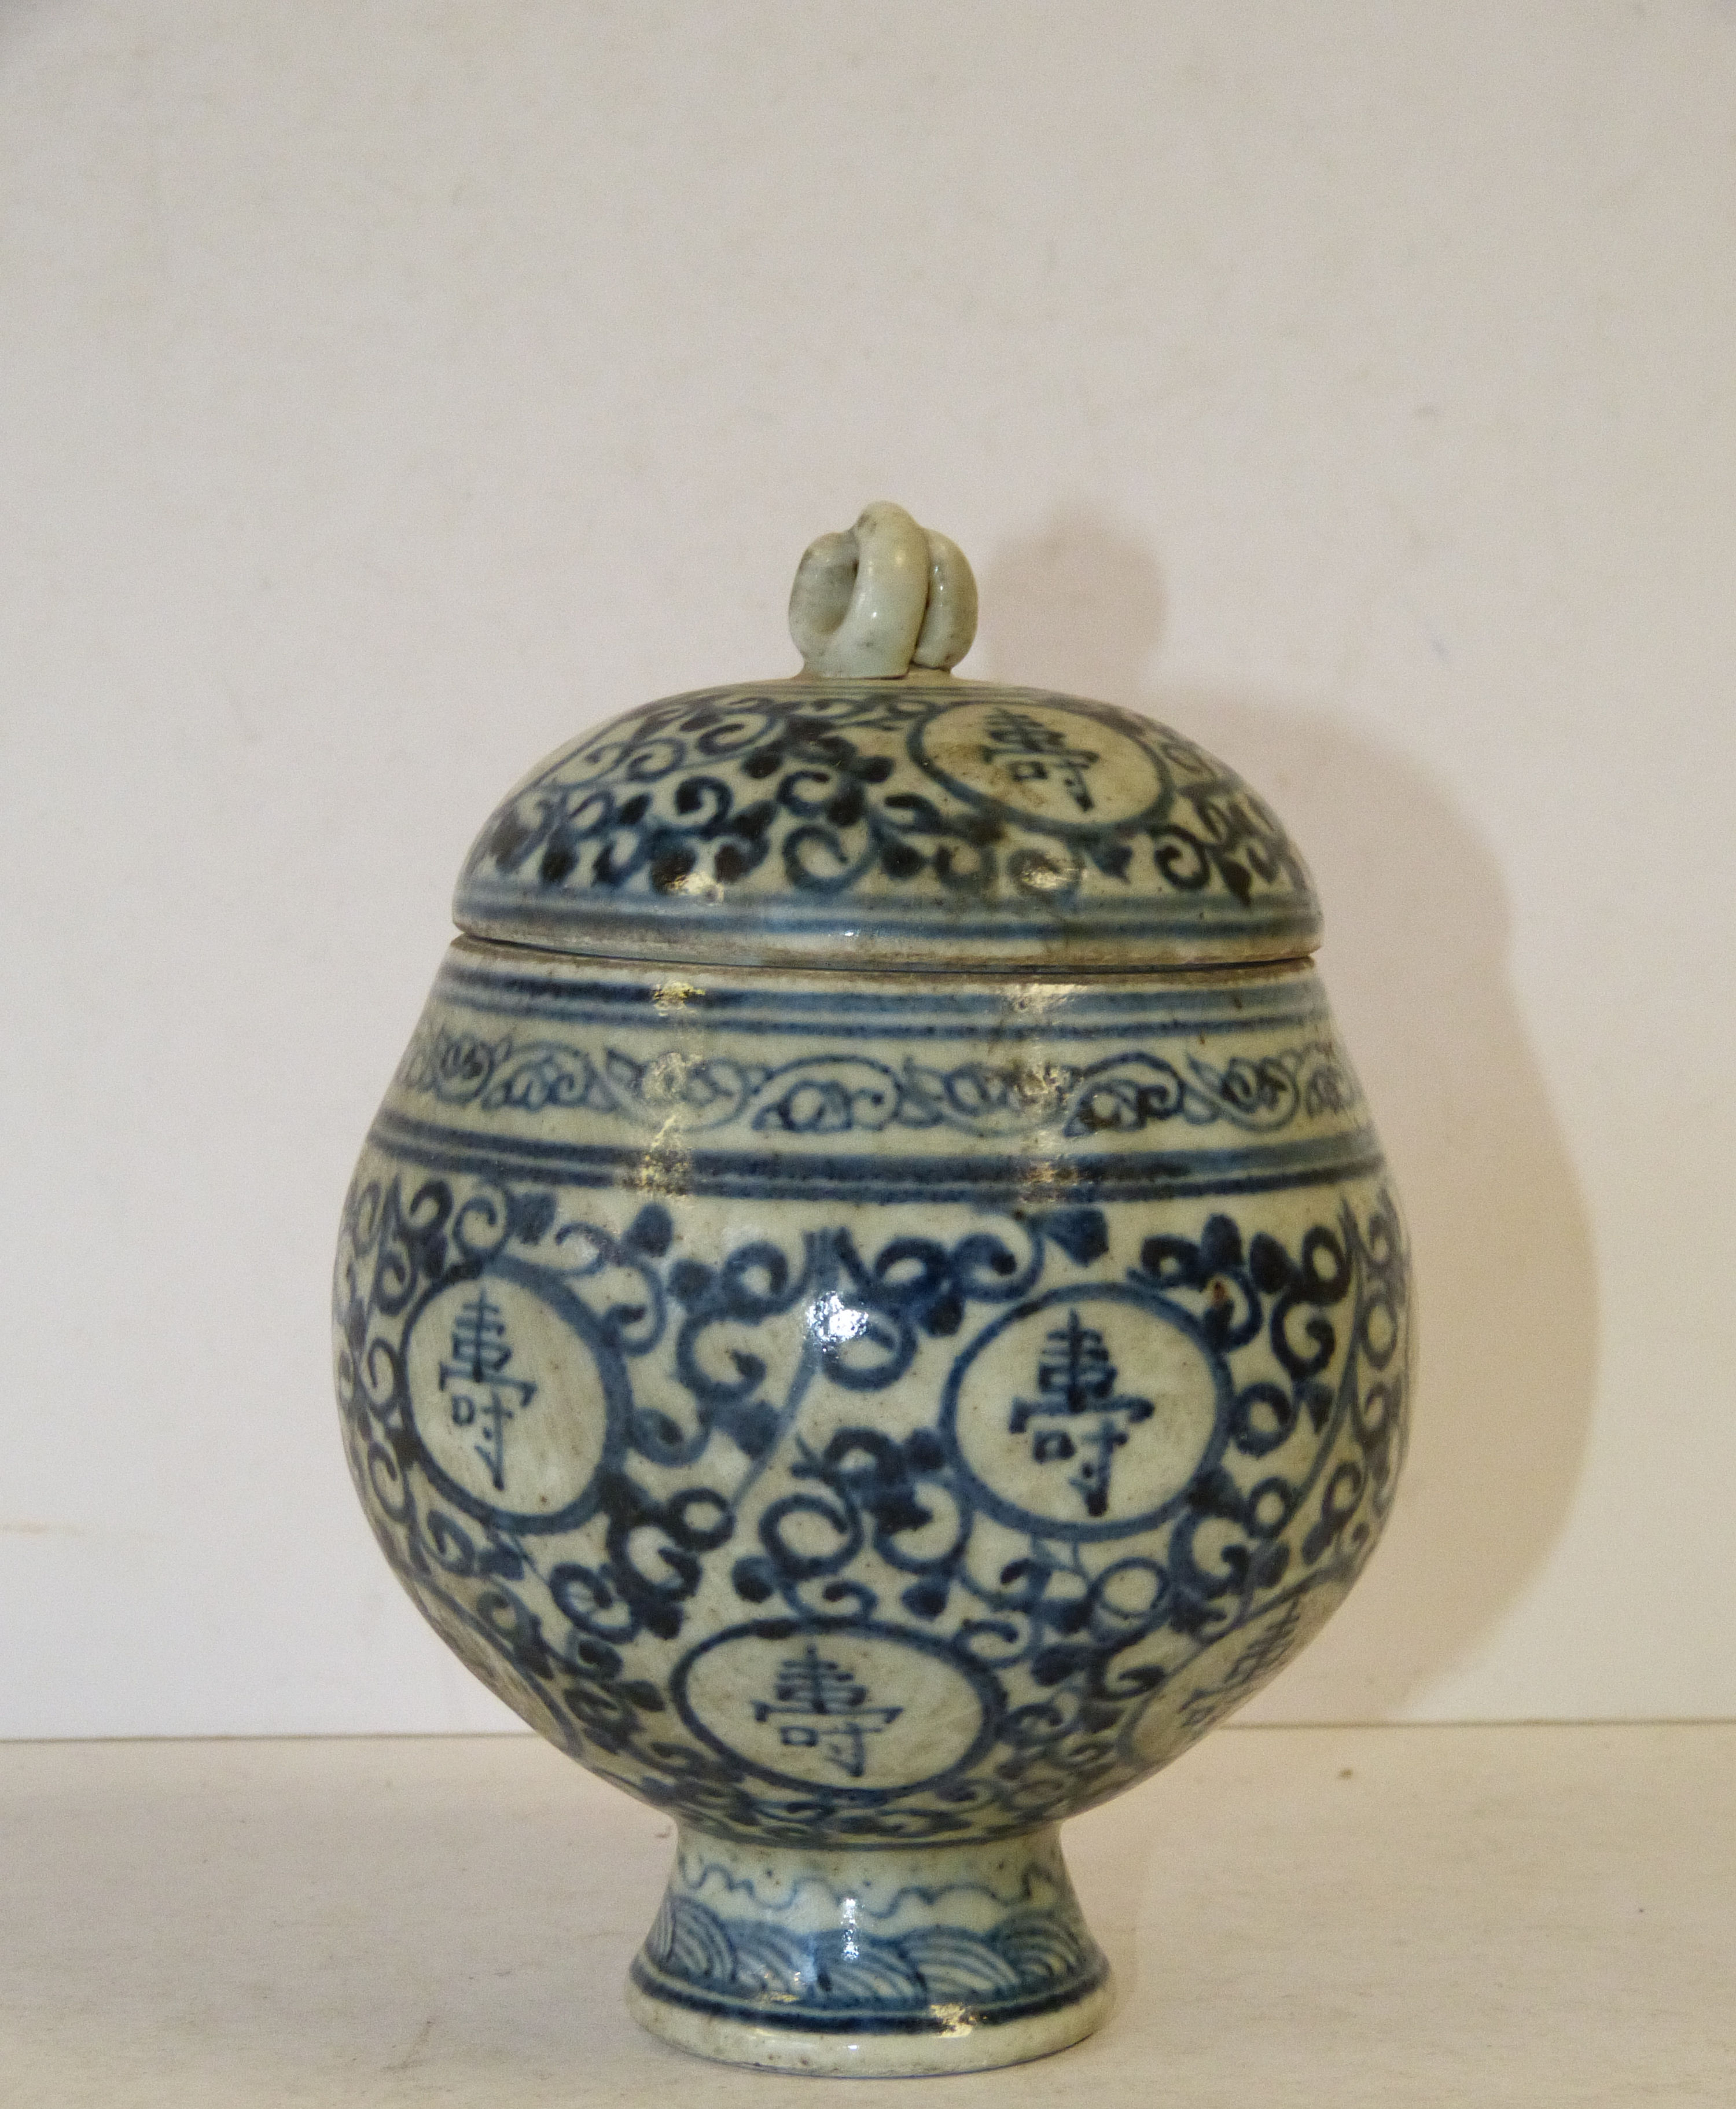 An Oriental Blue and White Lidded Pot with floral and inscription decoration